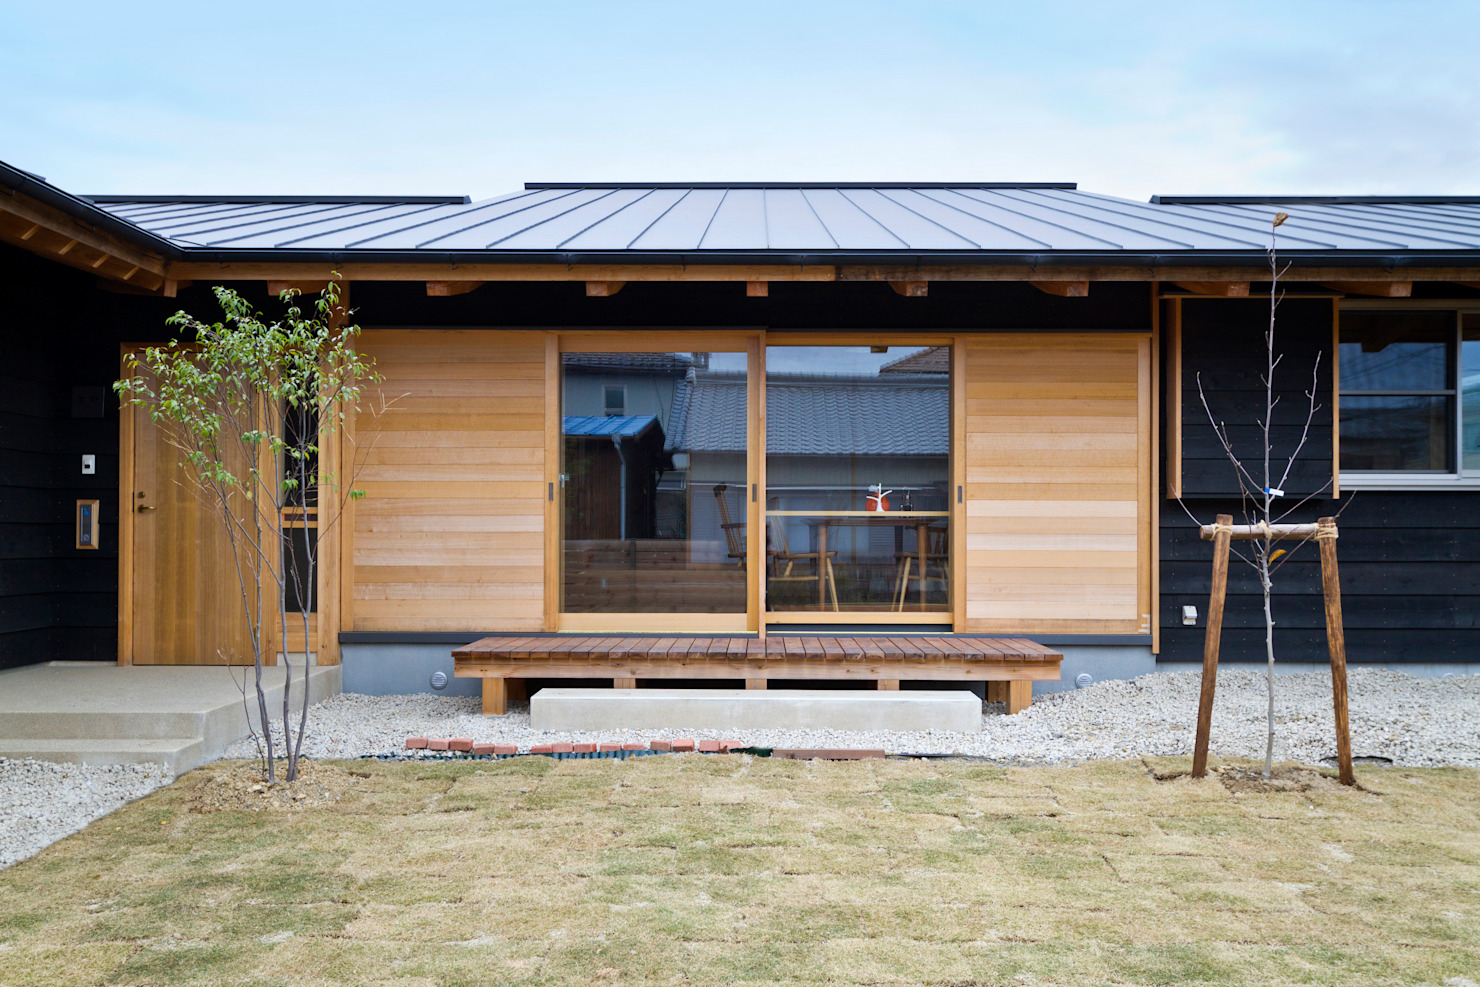 A modern and simple Japanese home